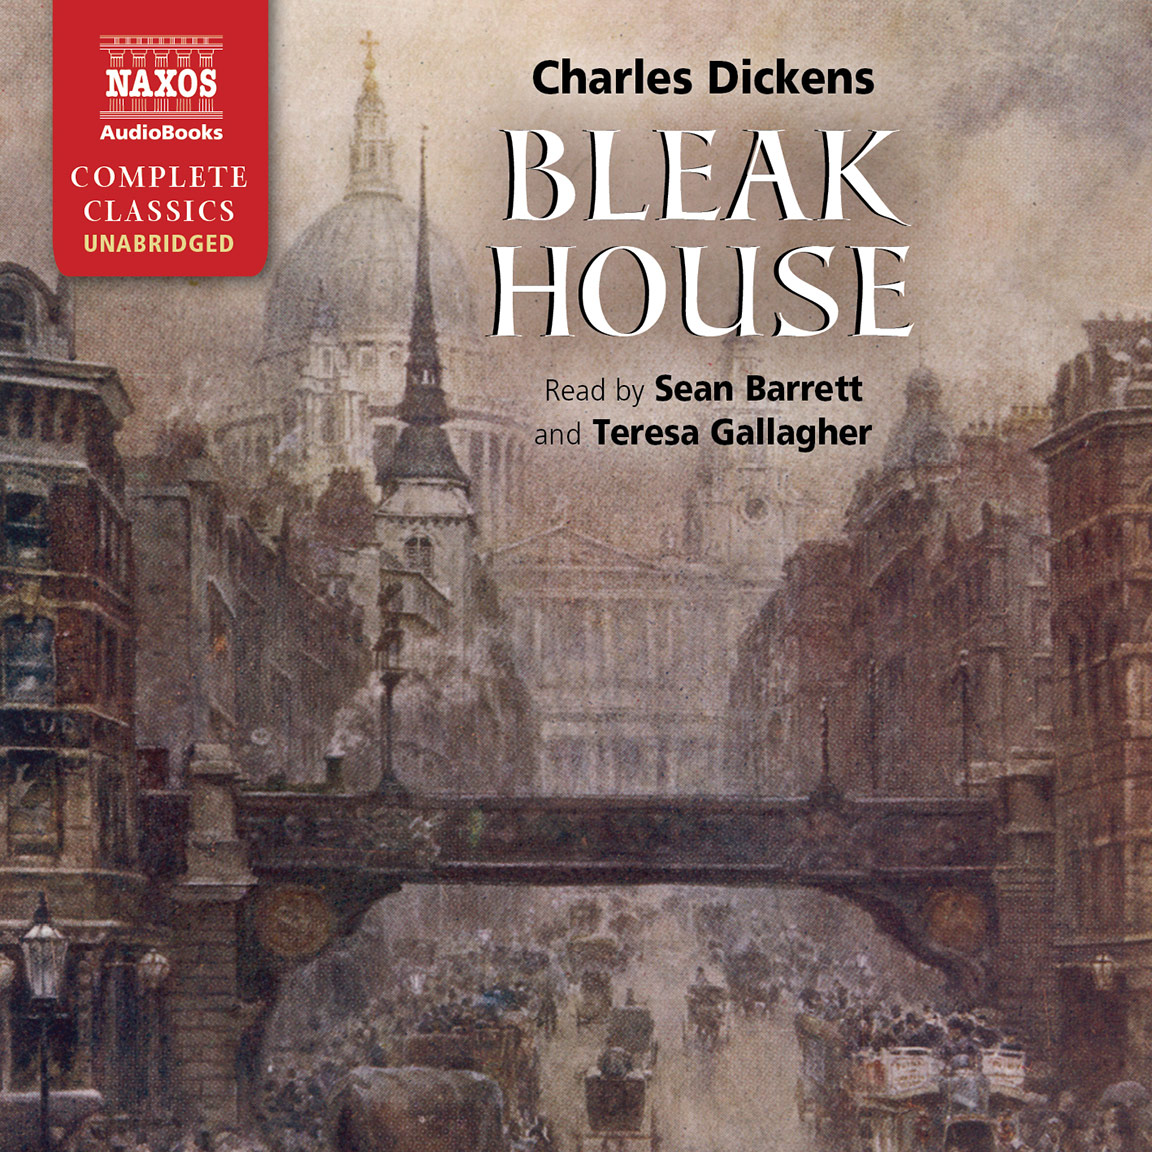 an analysis of literary devices and irony in the works by charles dickens Analysis of linguistic toolkits in bleak house by charles  on analysis of linguistic toolkits in bleak house  a literary analysis of charles dickens.